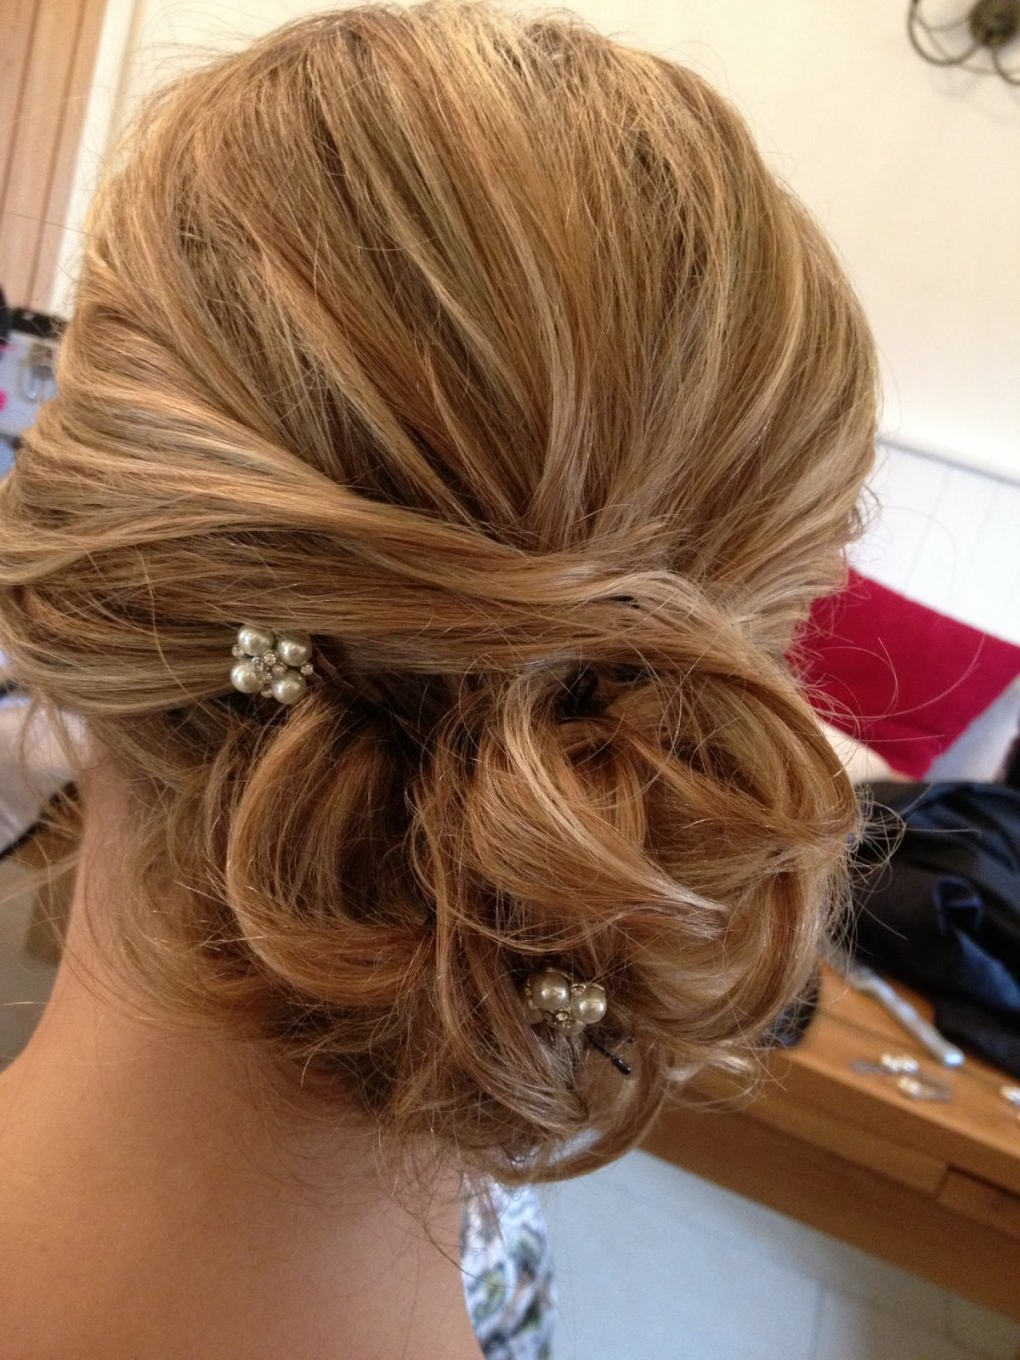 Trendy Messy Buns Updo Bridal Hairstyles Within Bridesmaid Hairstyles Messy Bun » Best Hairstyles & Haircuts For All (View 18 of 20)